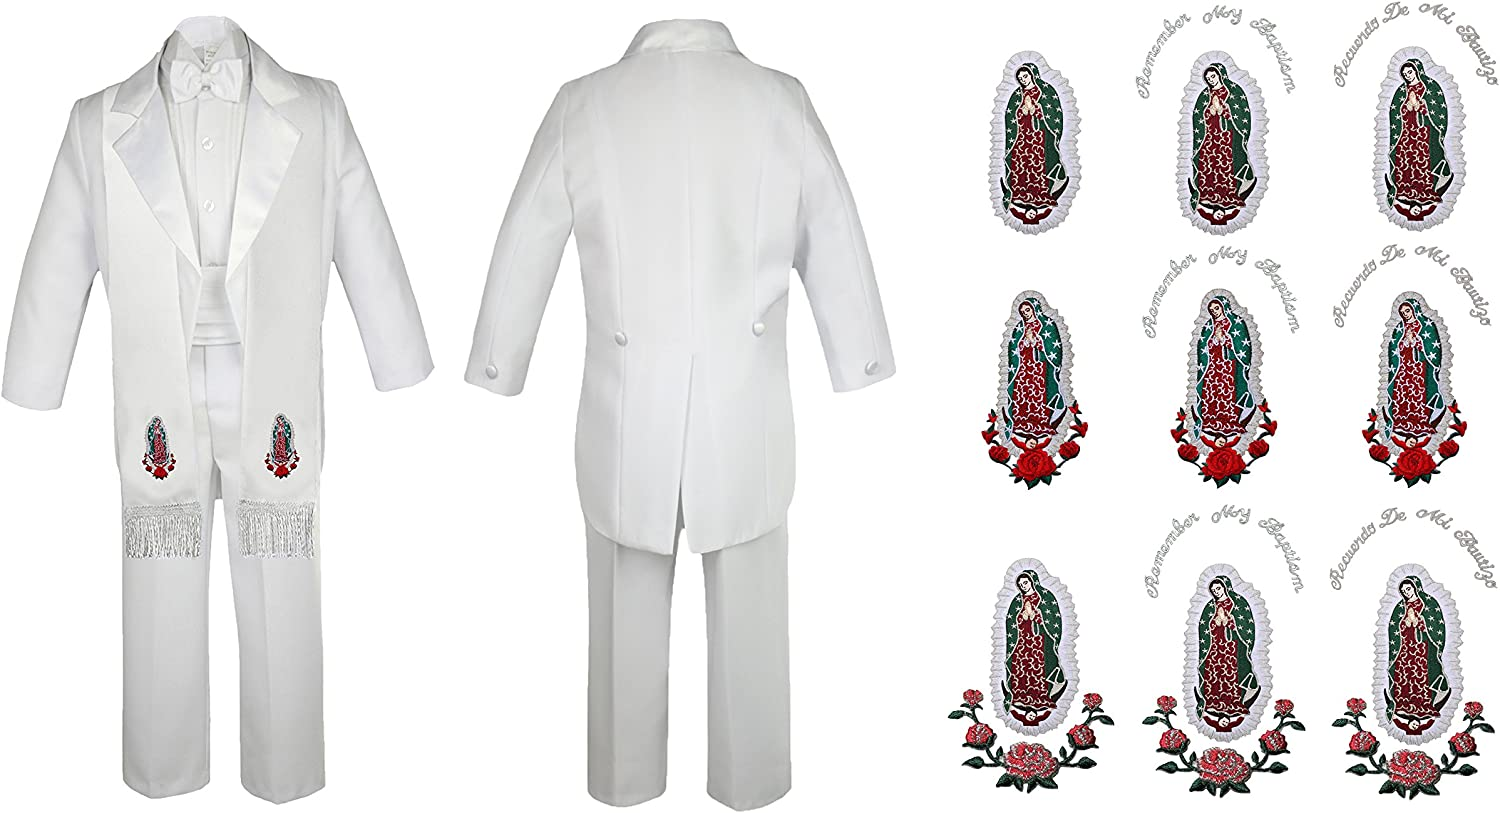 Leadertux Baby Boy Christening White Shorts Shirt Set Bow tie Guadalupe Maria Stole Sm-4T